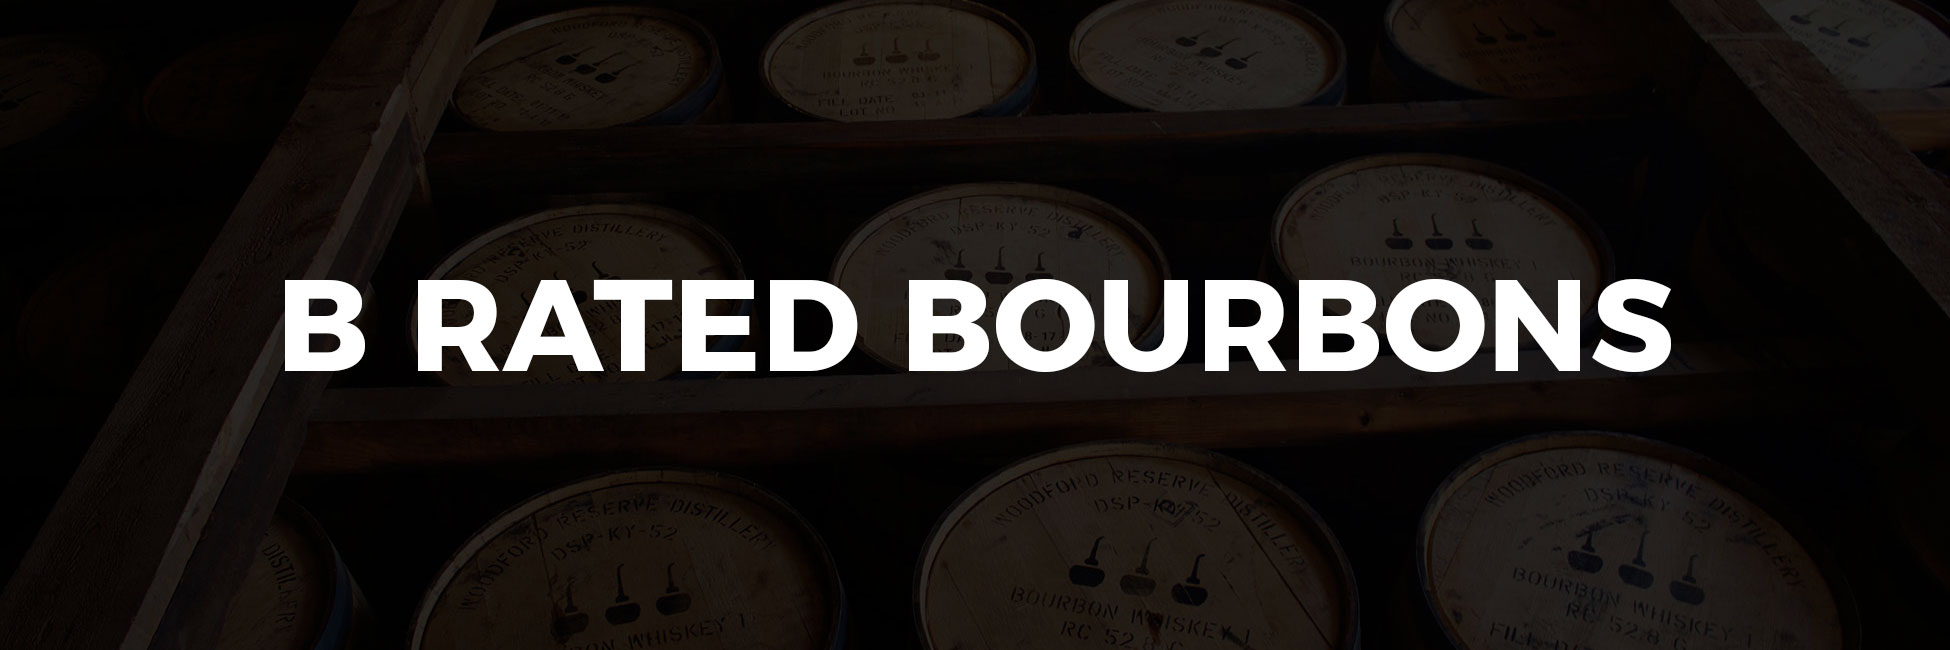 B Rated Bourbons